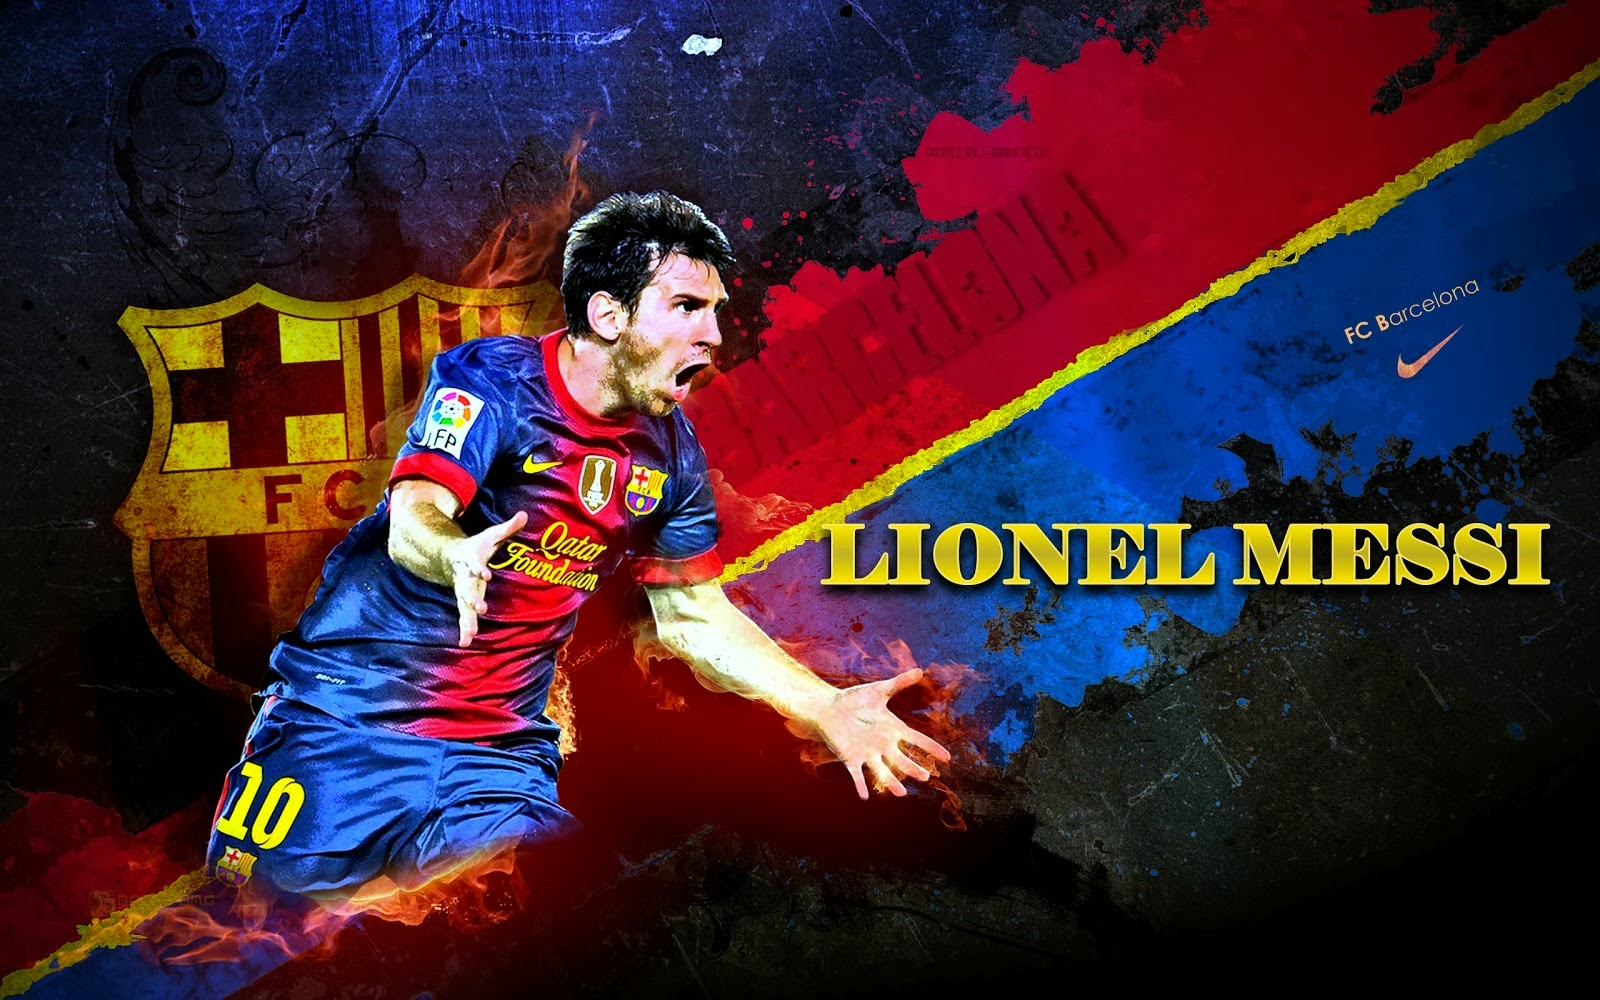 Lionel Messi New HD Wallpapers 2014-2015